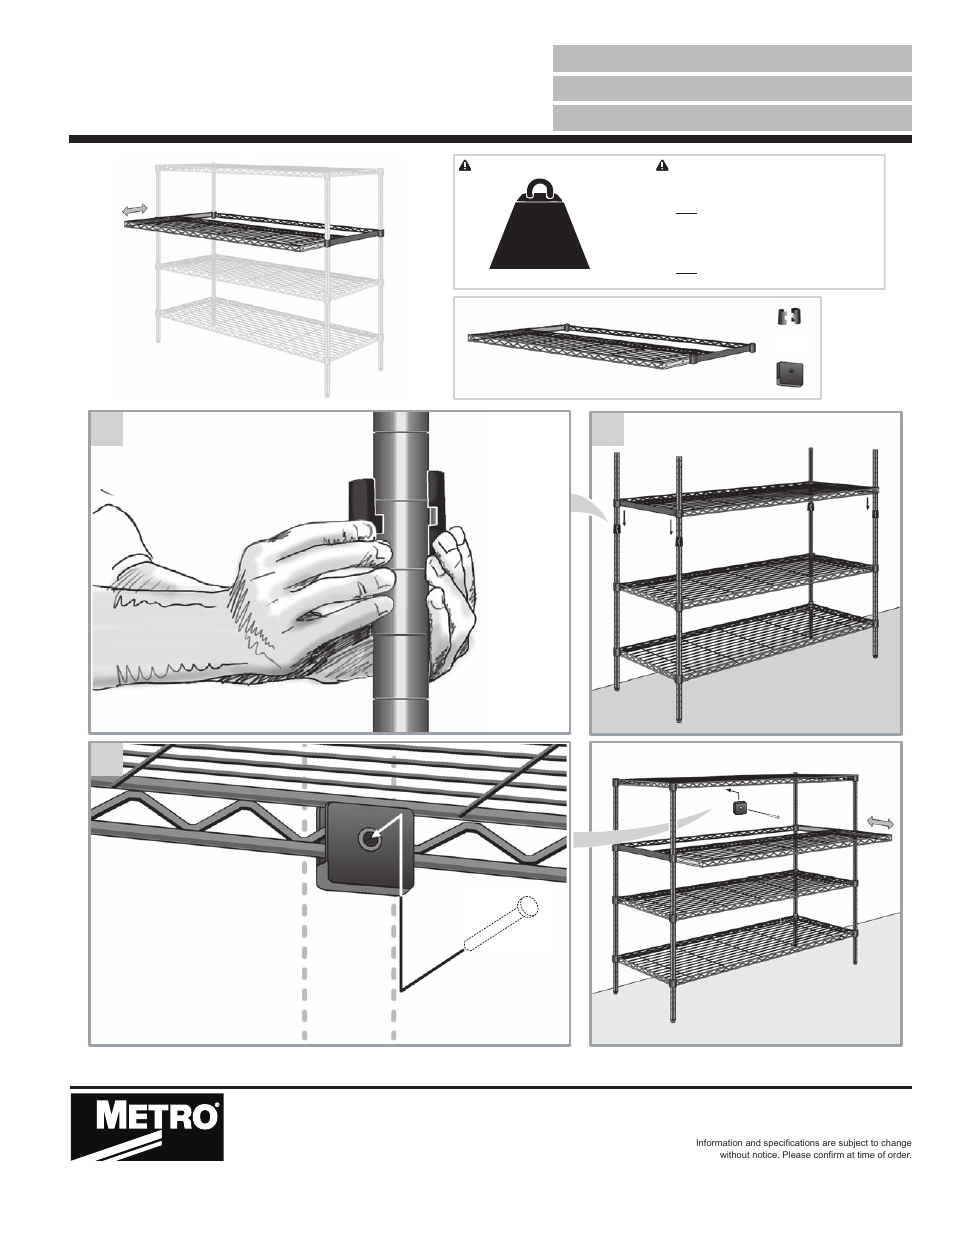 Metro Gliding Shelf User Manual 1 Page Also For Casters